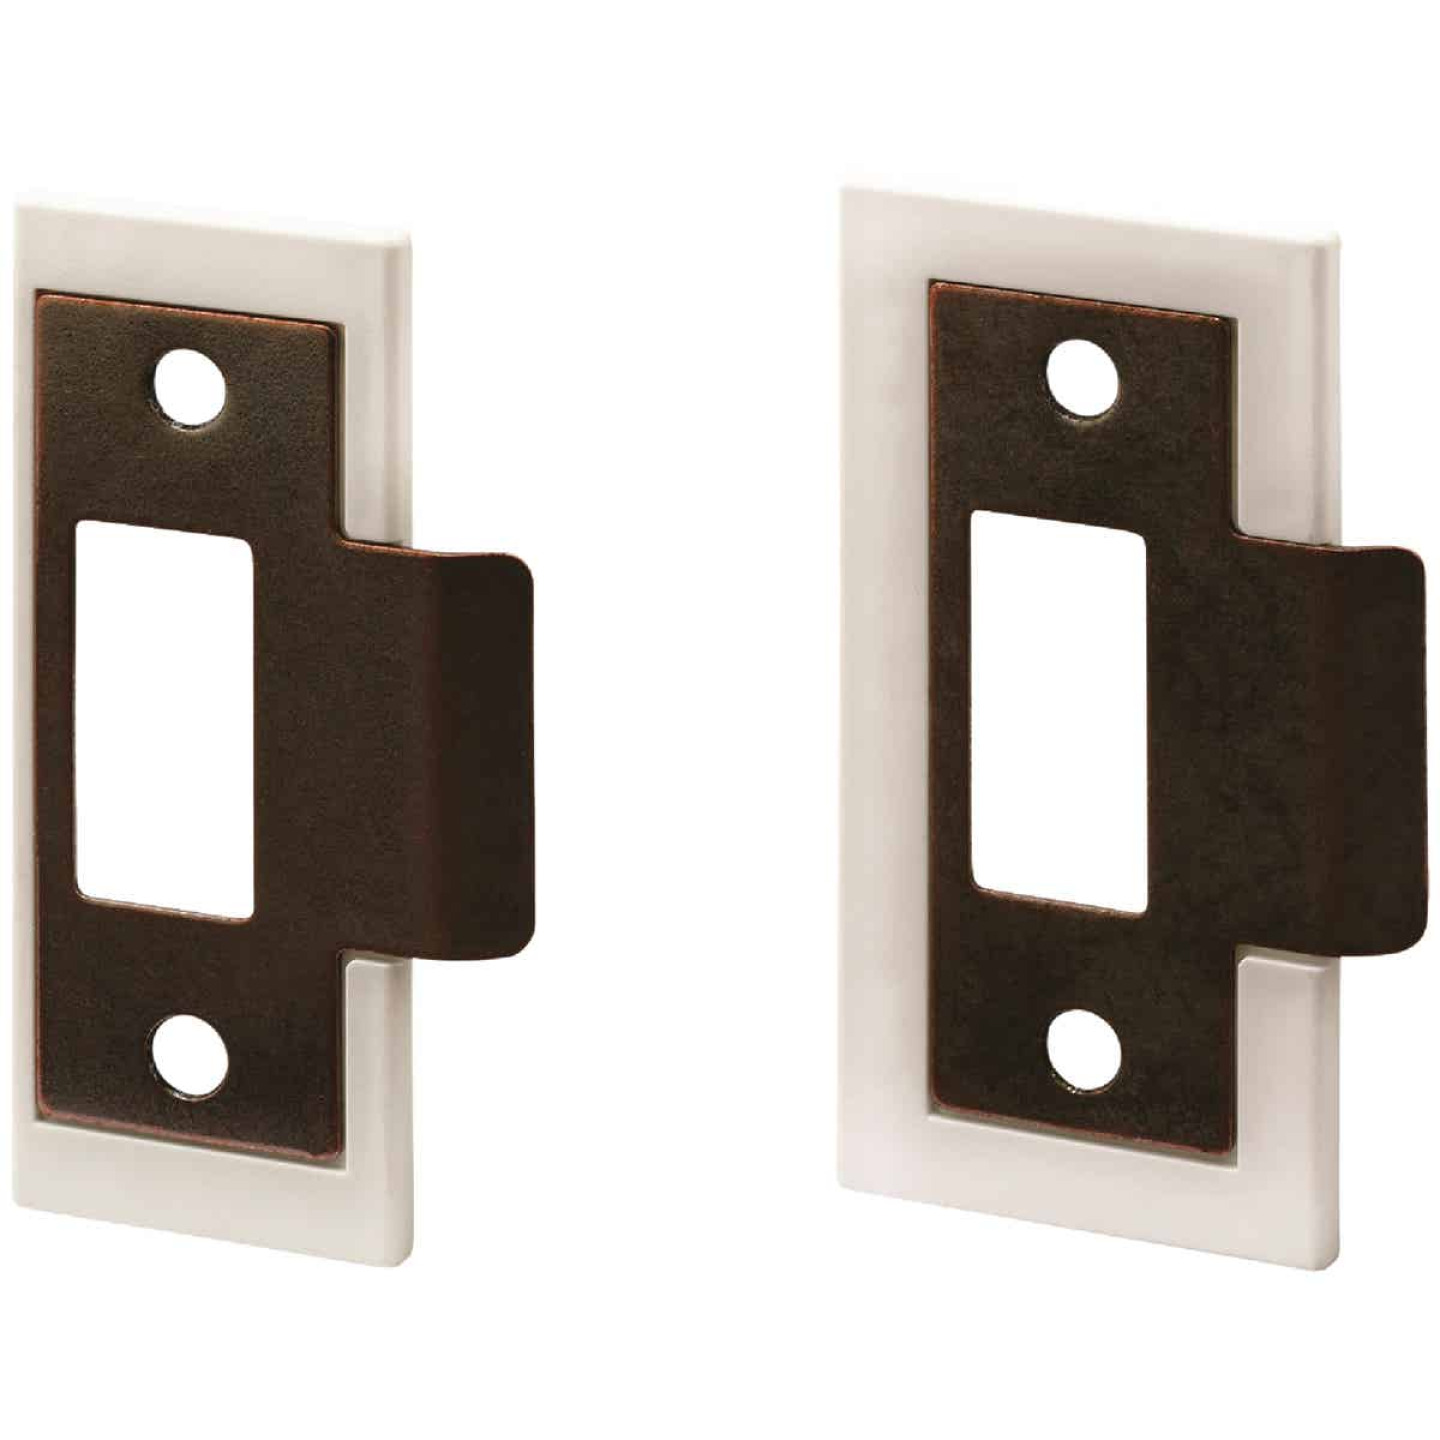 Prime-Line Fix-A-Latch Bronze Repair Kit (2 Pack) Image 1